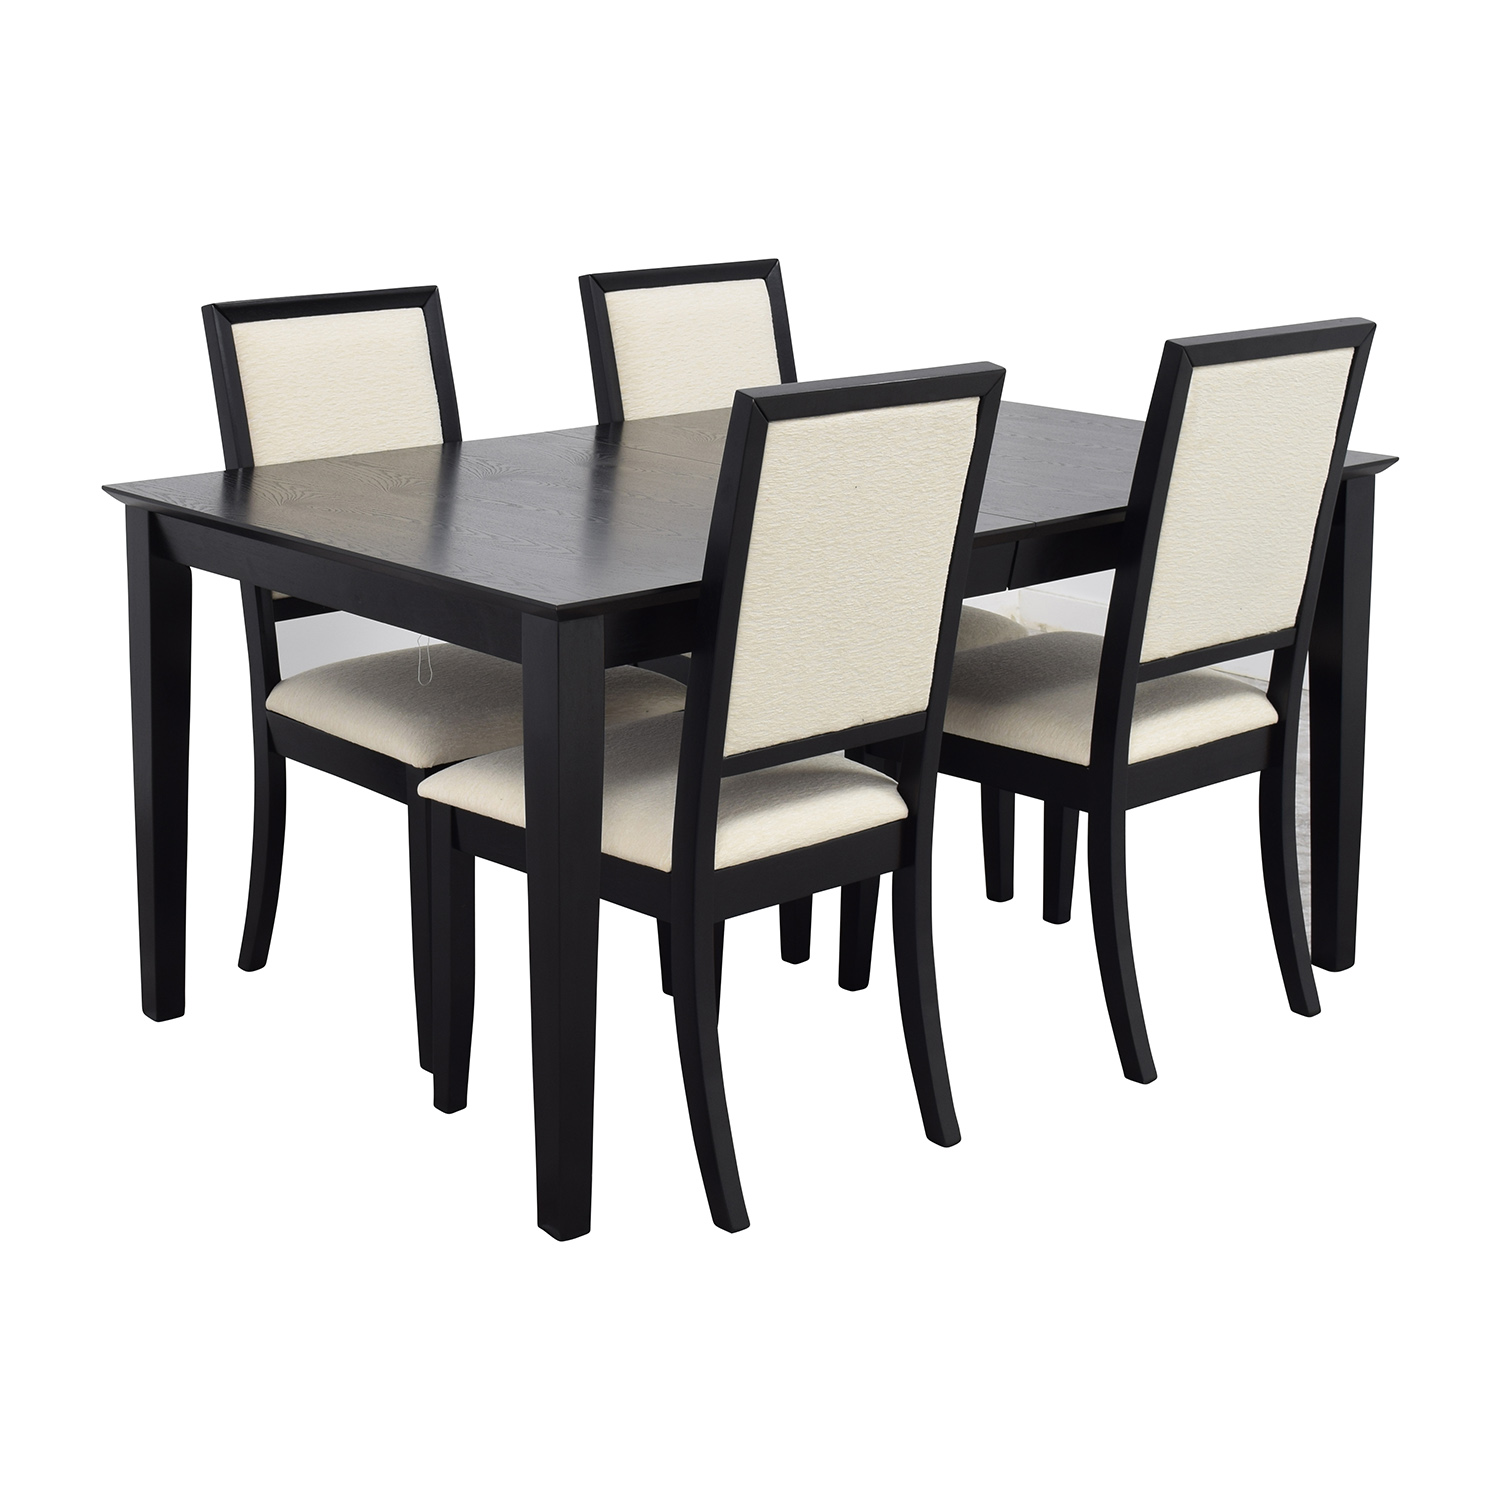 72 off harlem furniture harlem furniture black dining for Four chair dining table